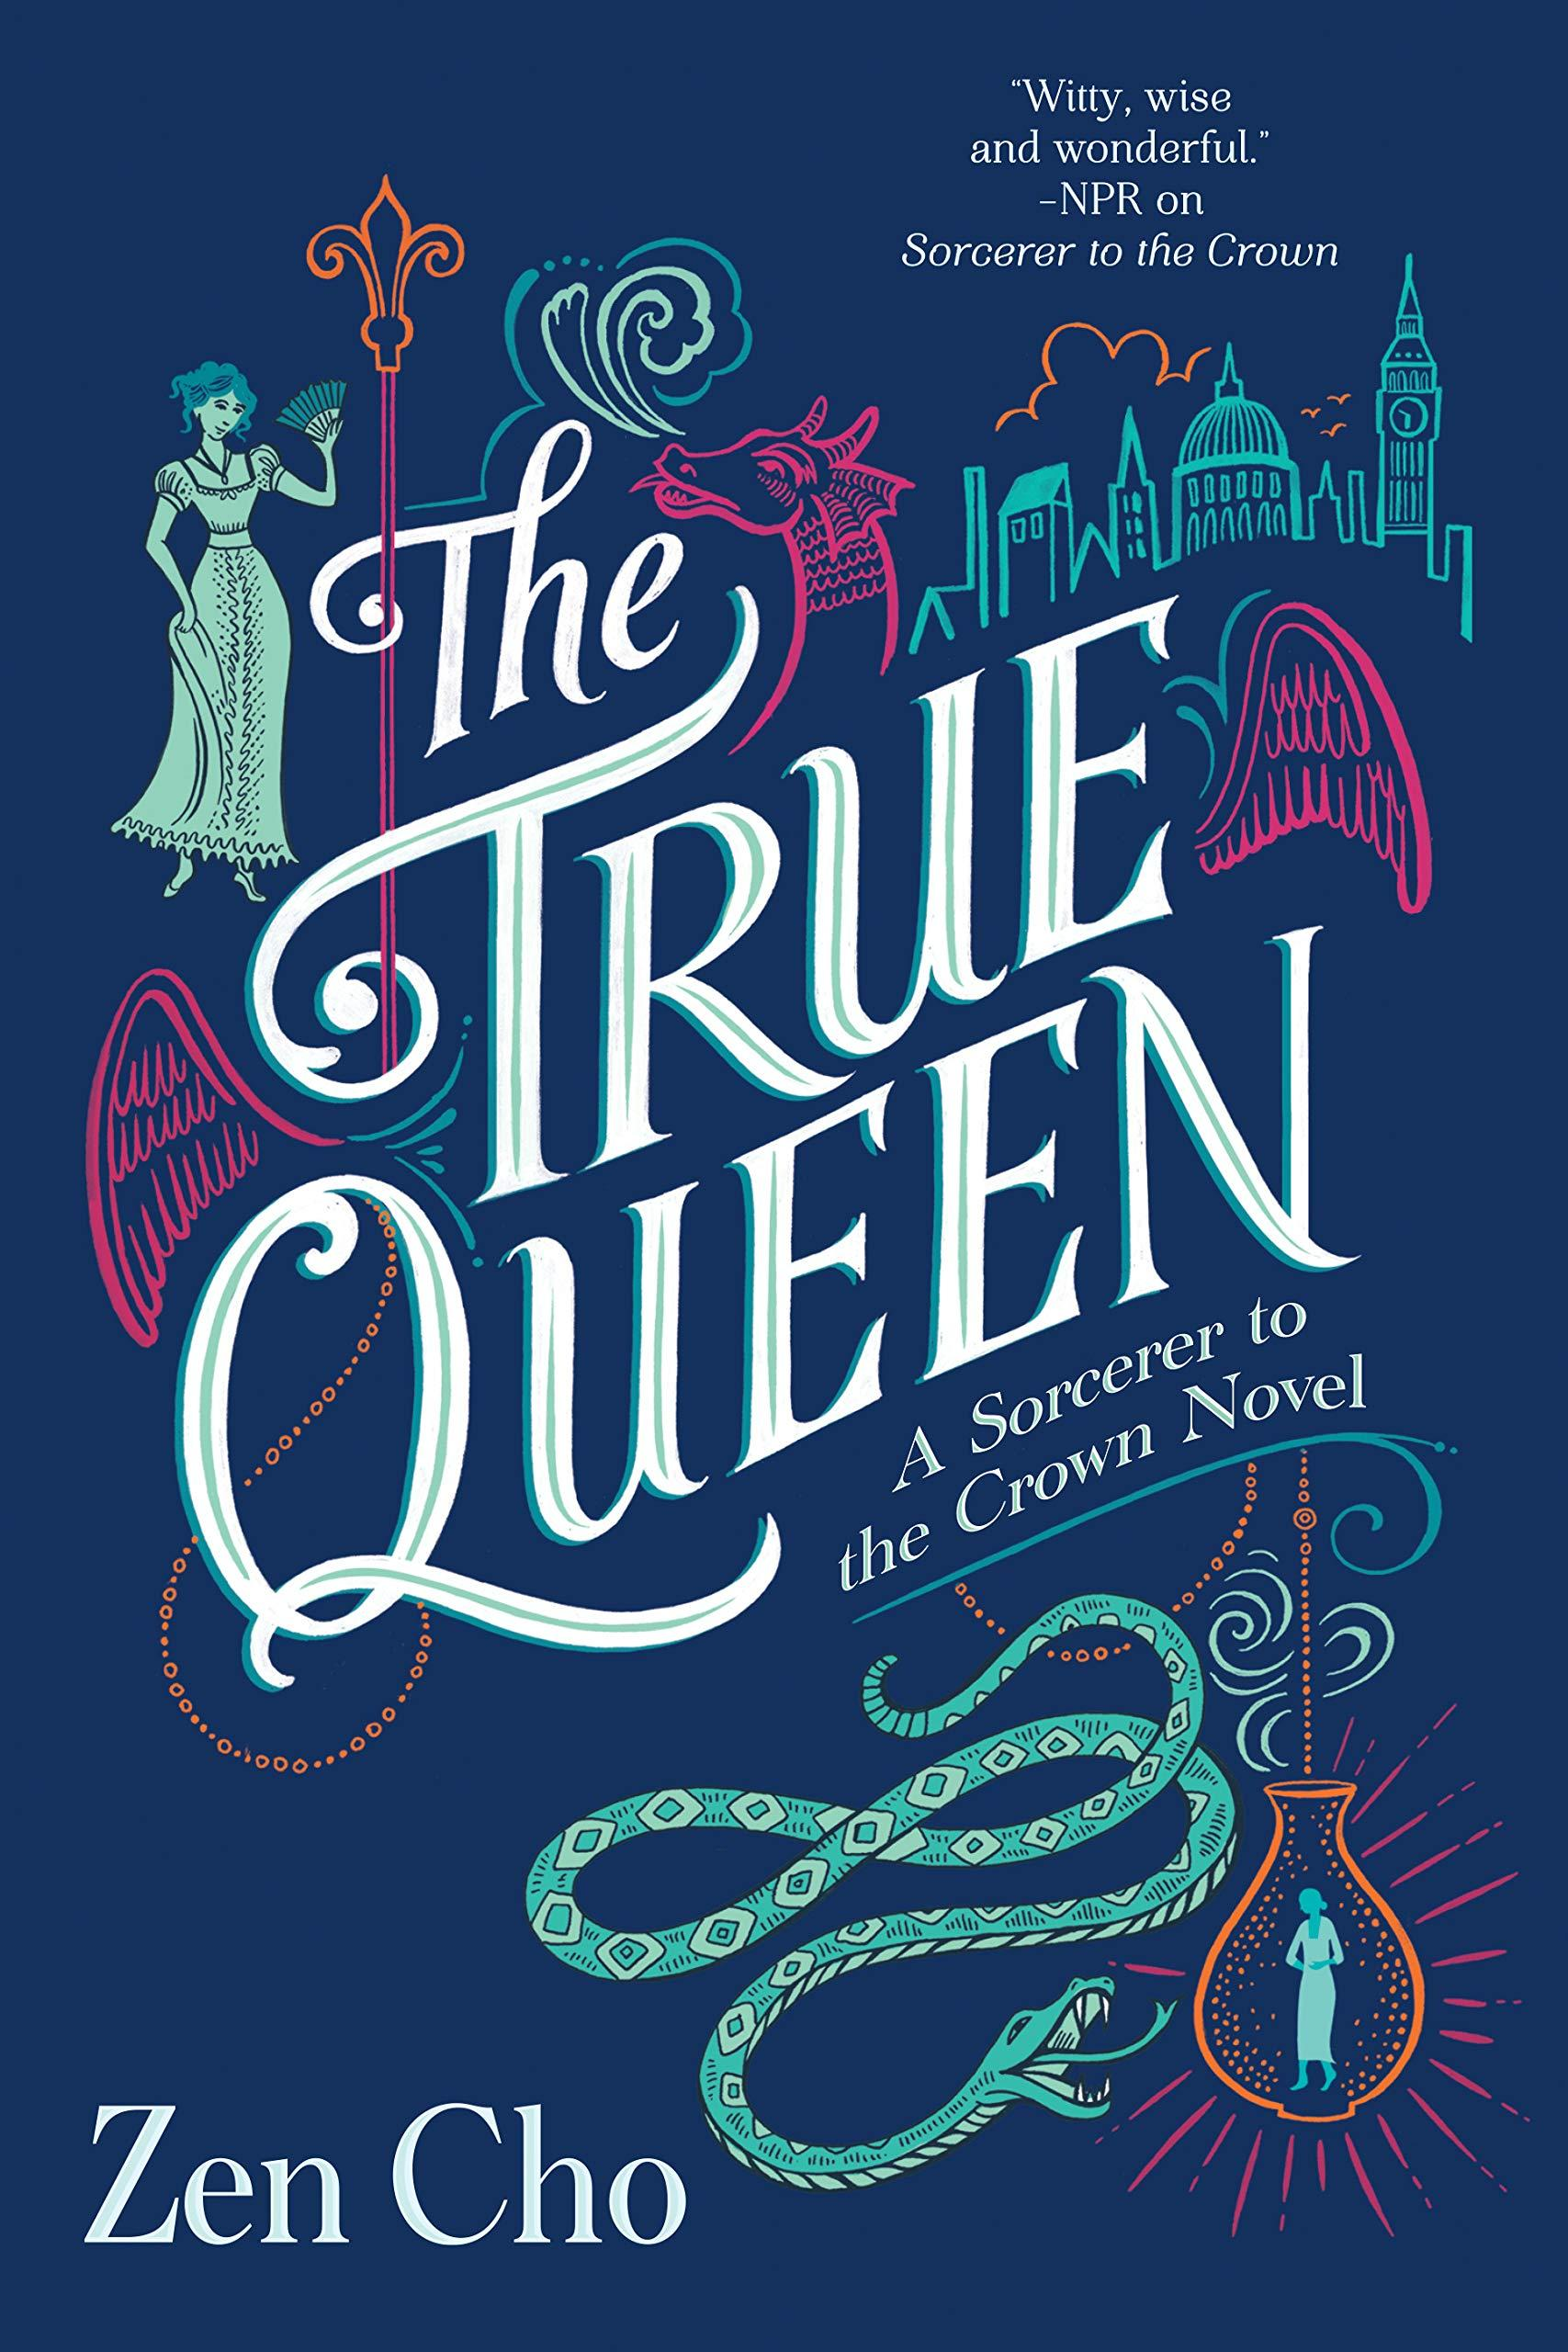 The True Queen (A Sorcerer to the Crown Novel) by Zen Cho